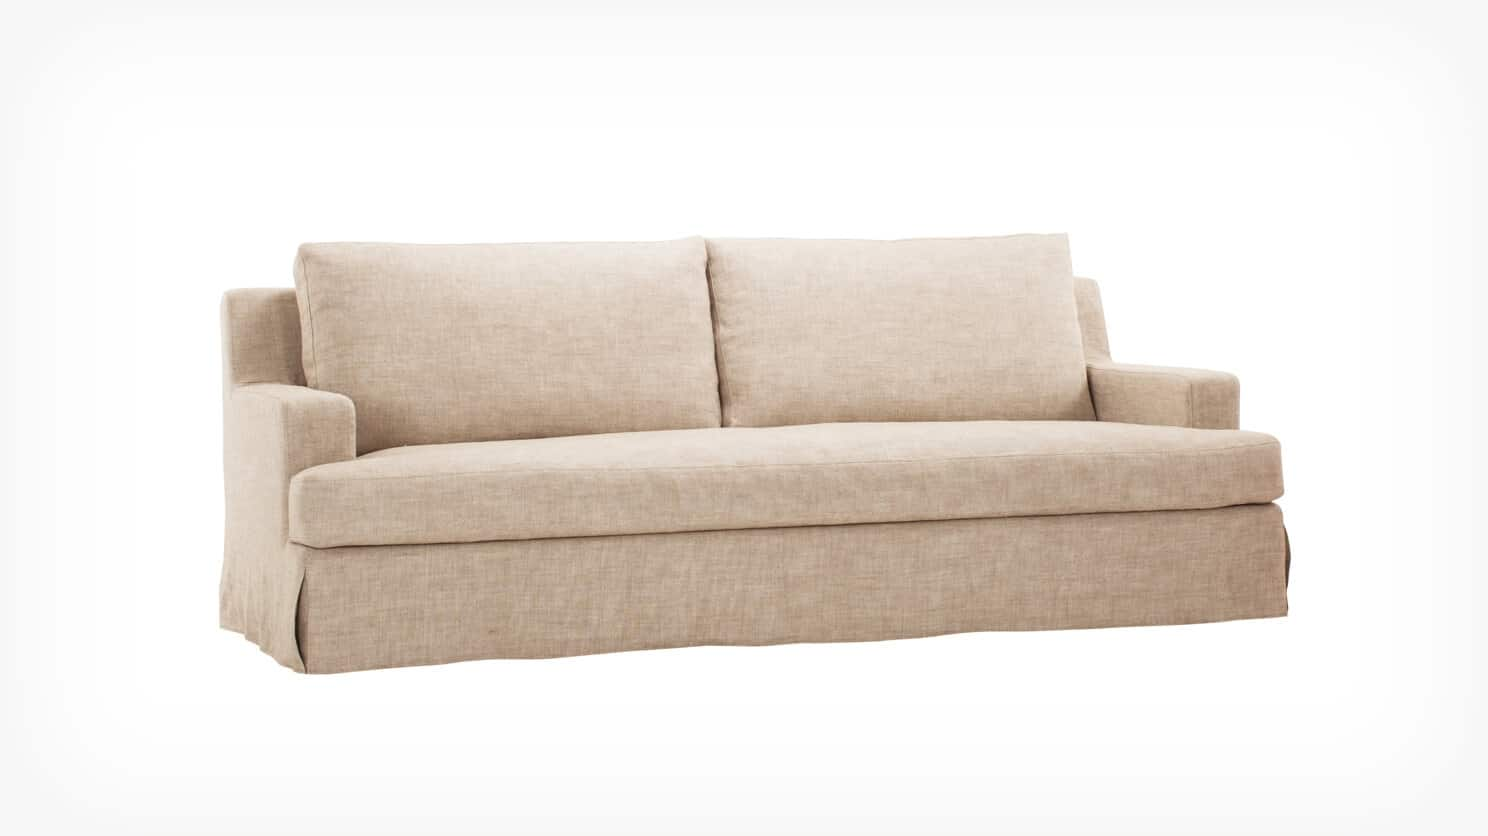 32113 01 02 sofa blanche slipcover front angled view